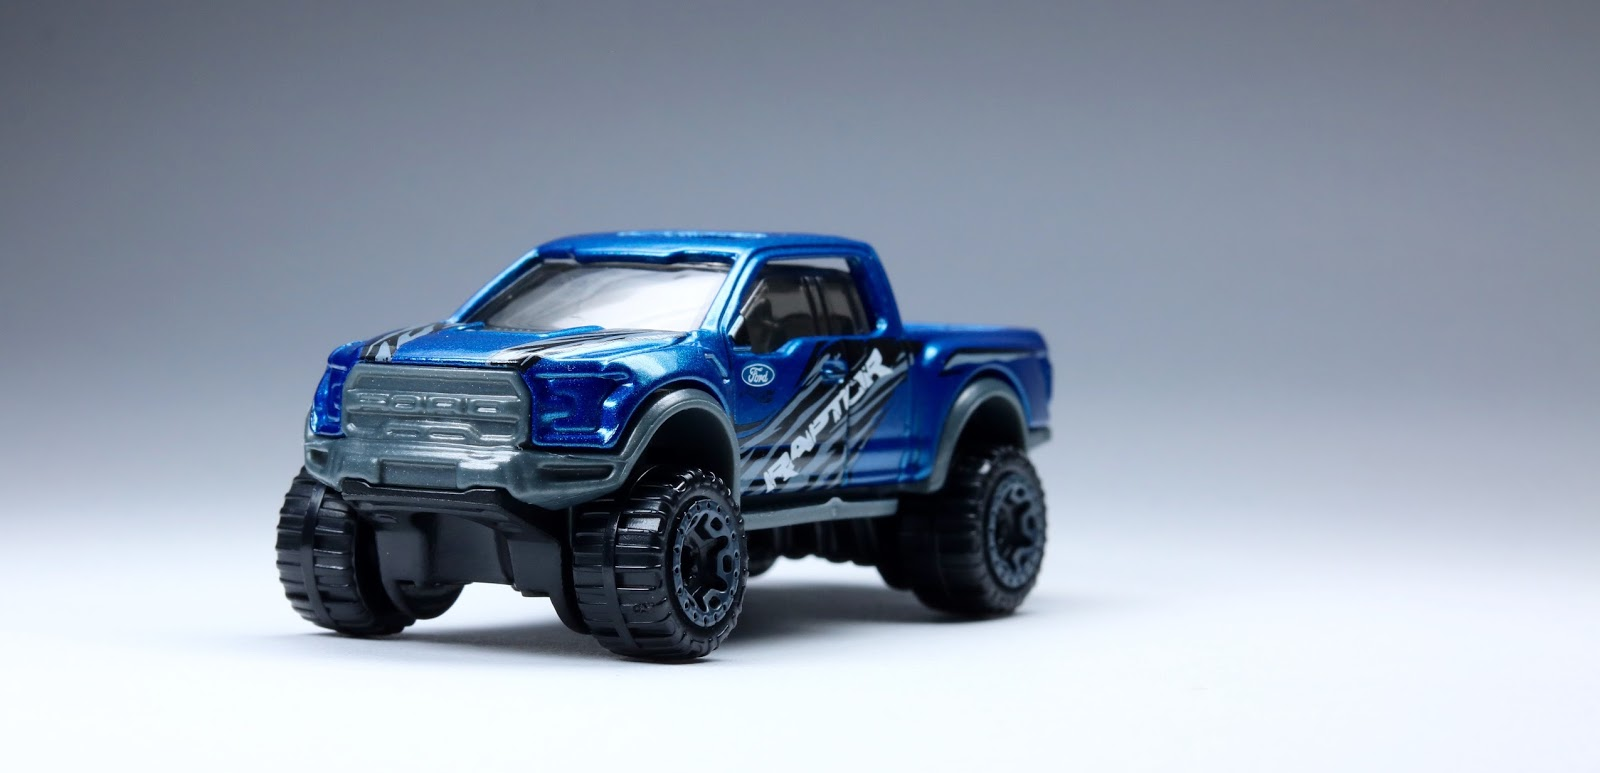 A Tale Of Two The Brand New Hot Wheels '17 Ford Raptor